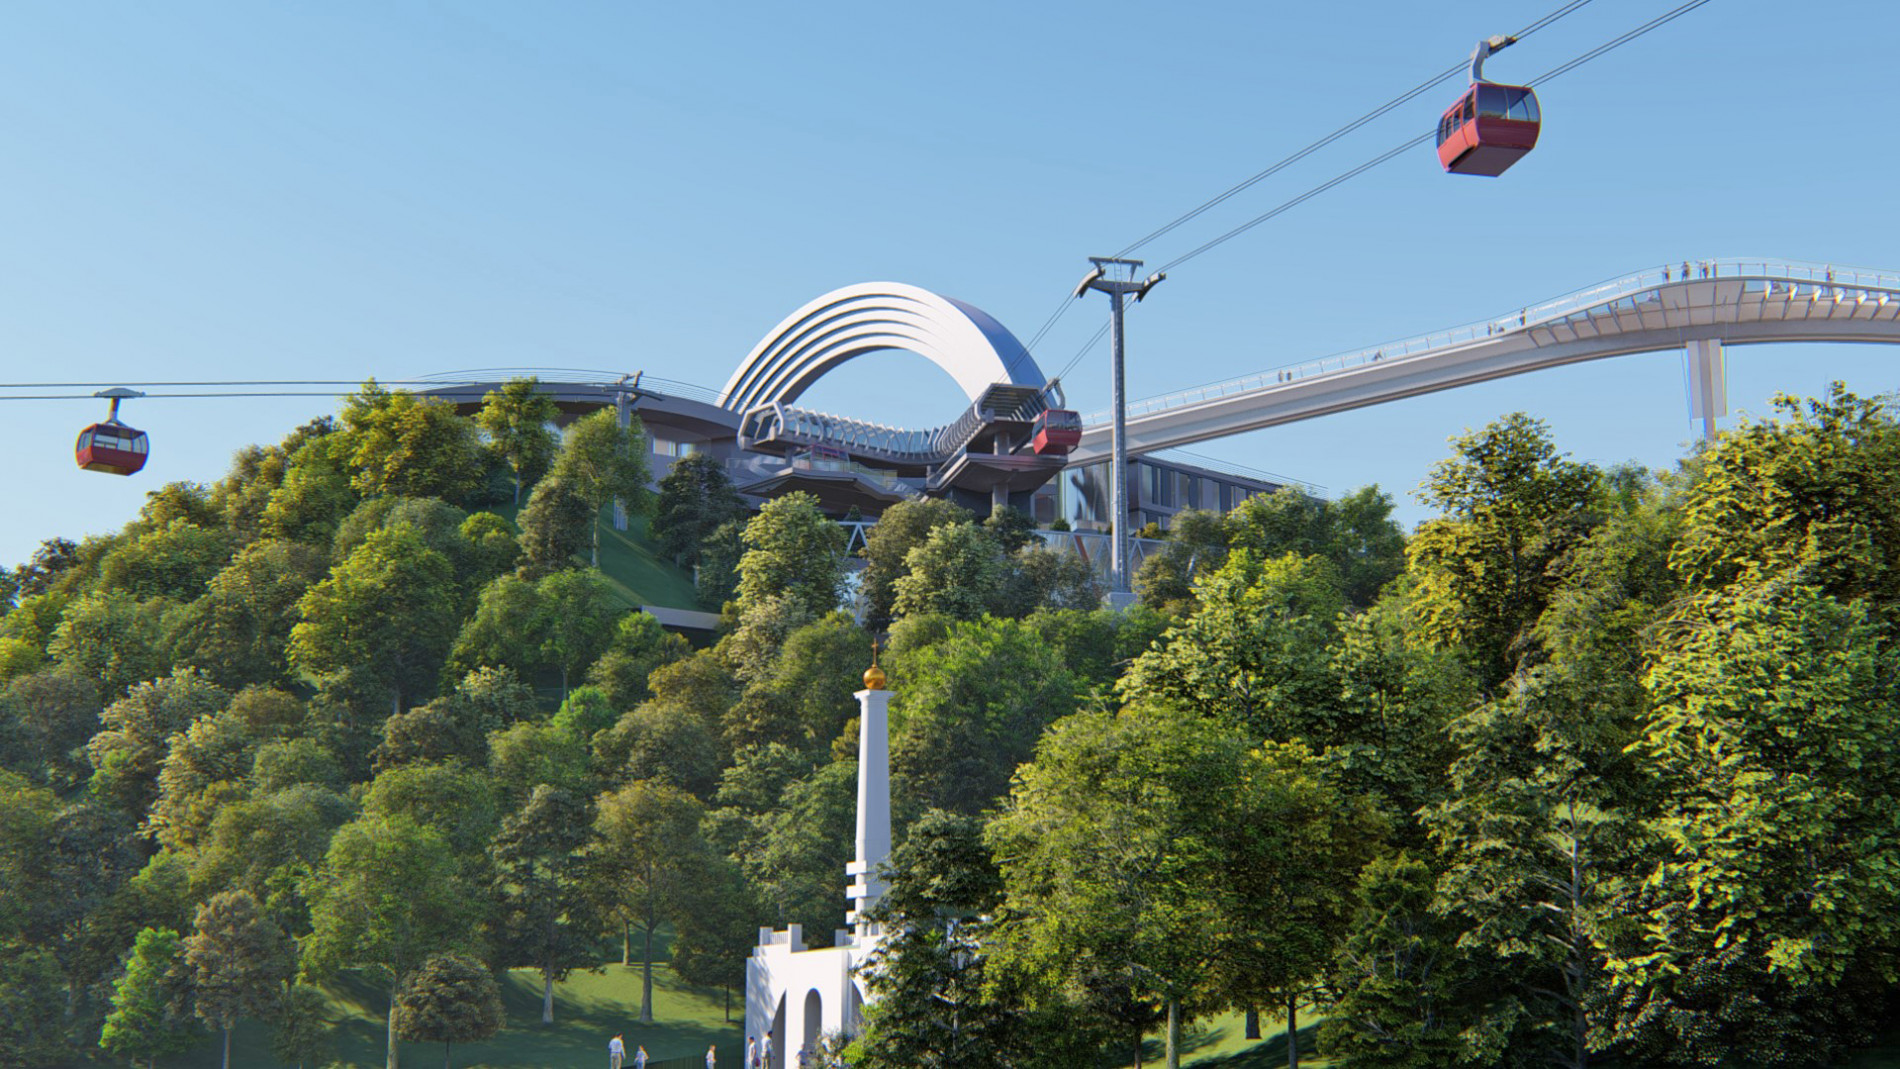 Construction (creation) of objects of engineering and transport infrastructure - cable car with public objects